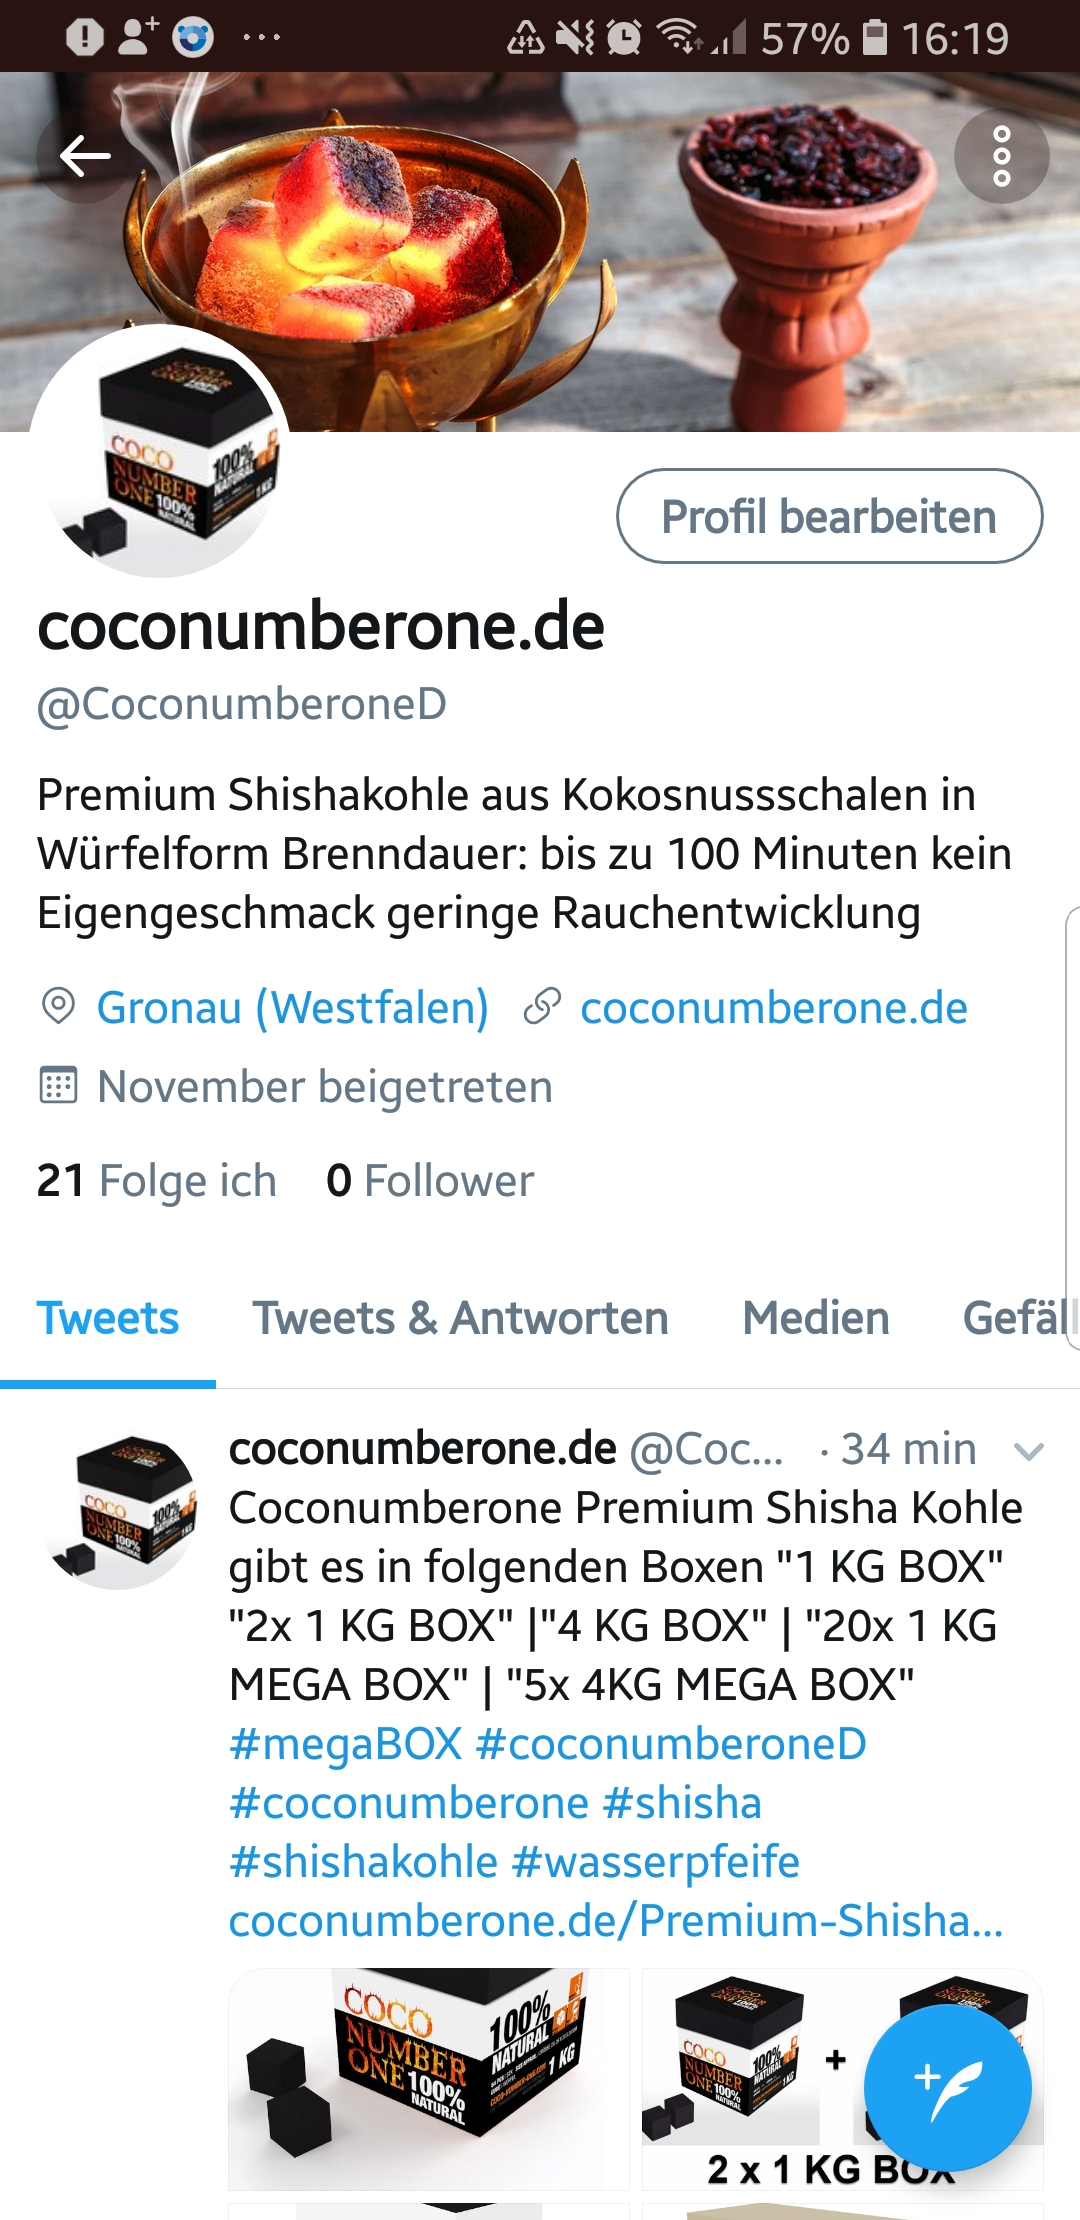 Bild zeigt Screenshot vom coconumberone.de Twitter Account